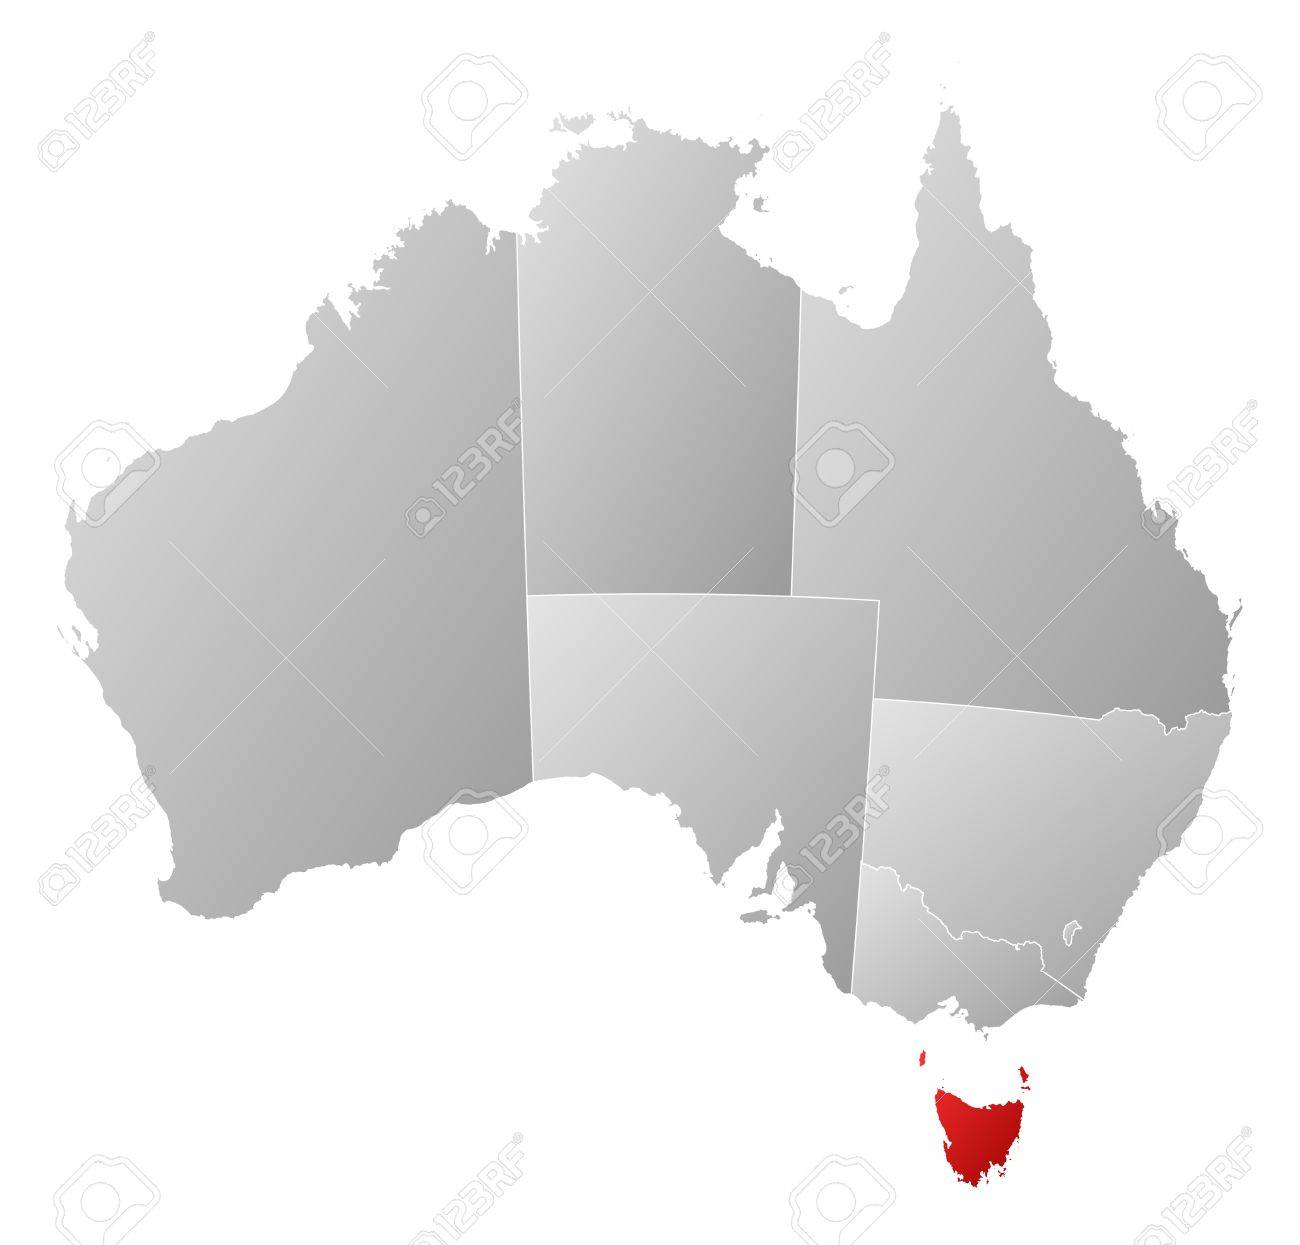 Where Is Australia Located On A Map.Political Map Of Australia With The Several States Where Tasmania